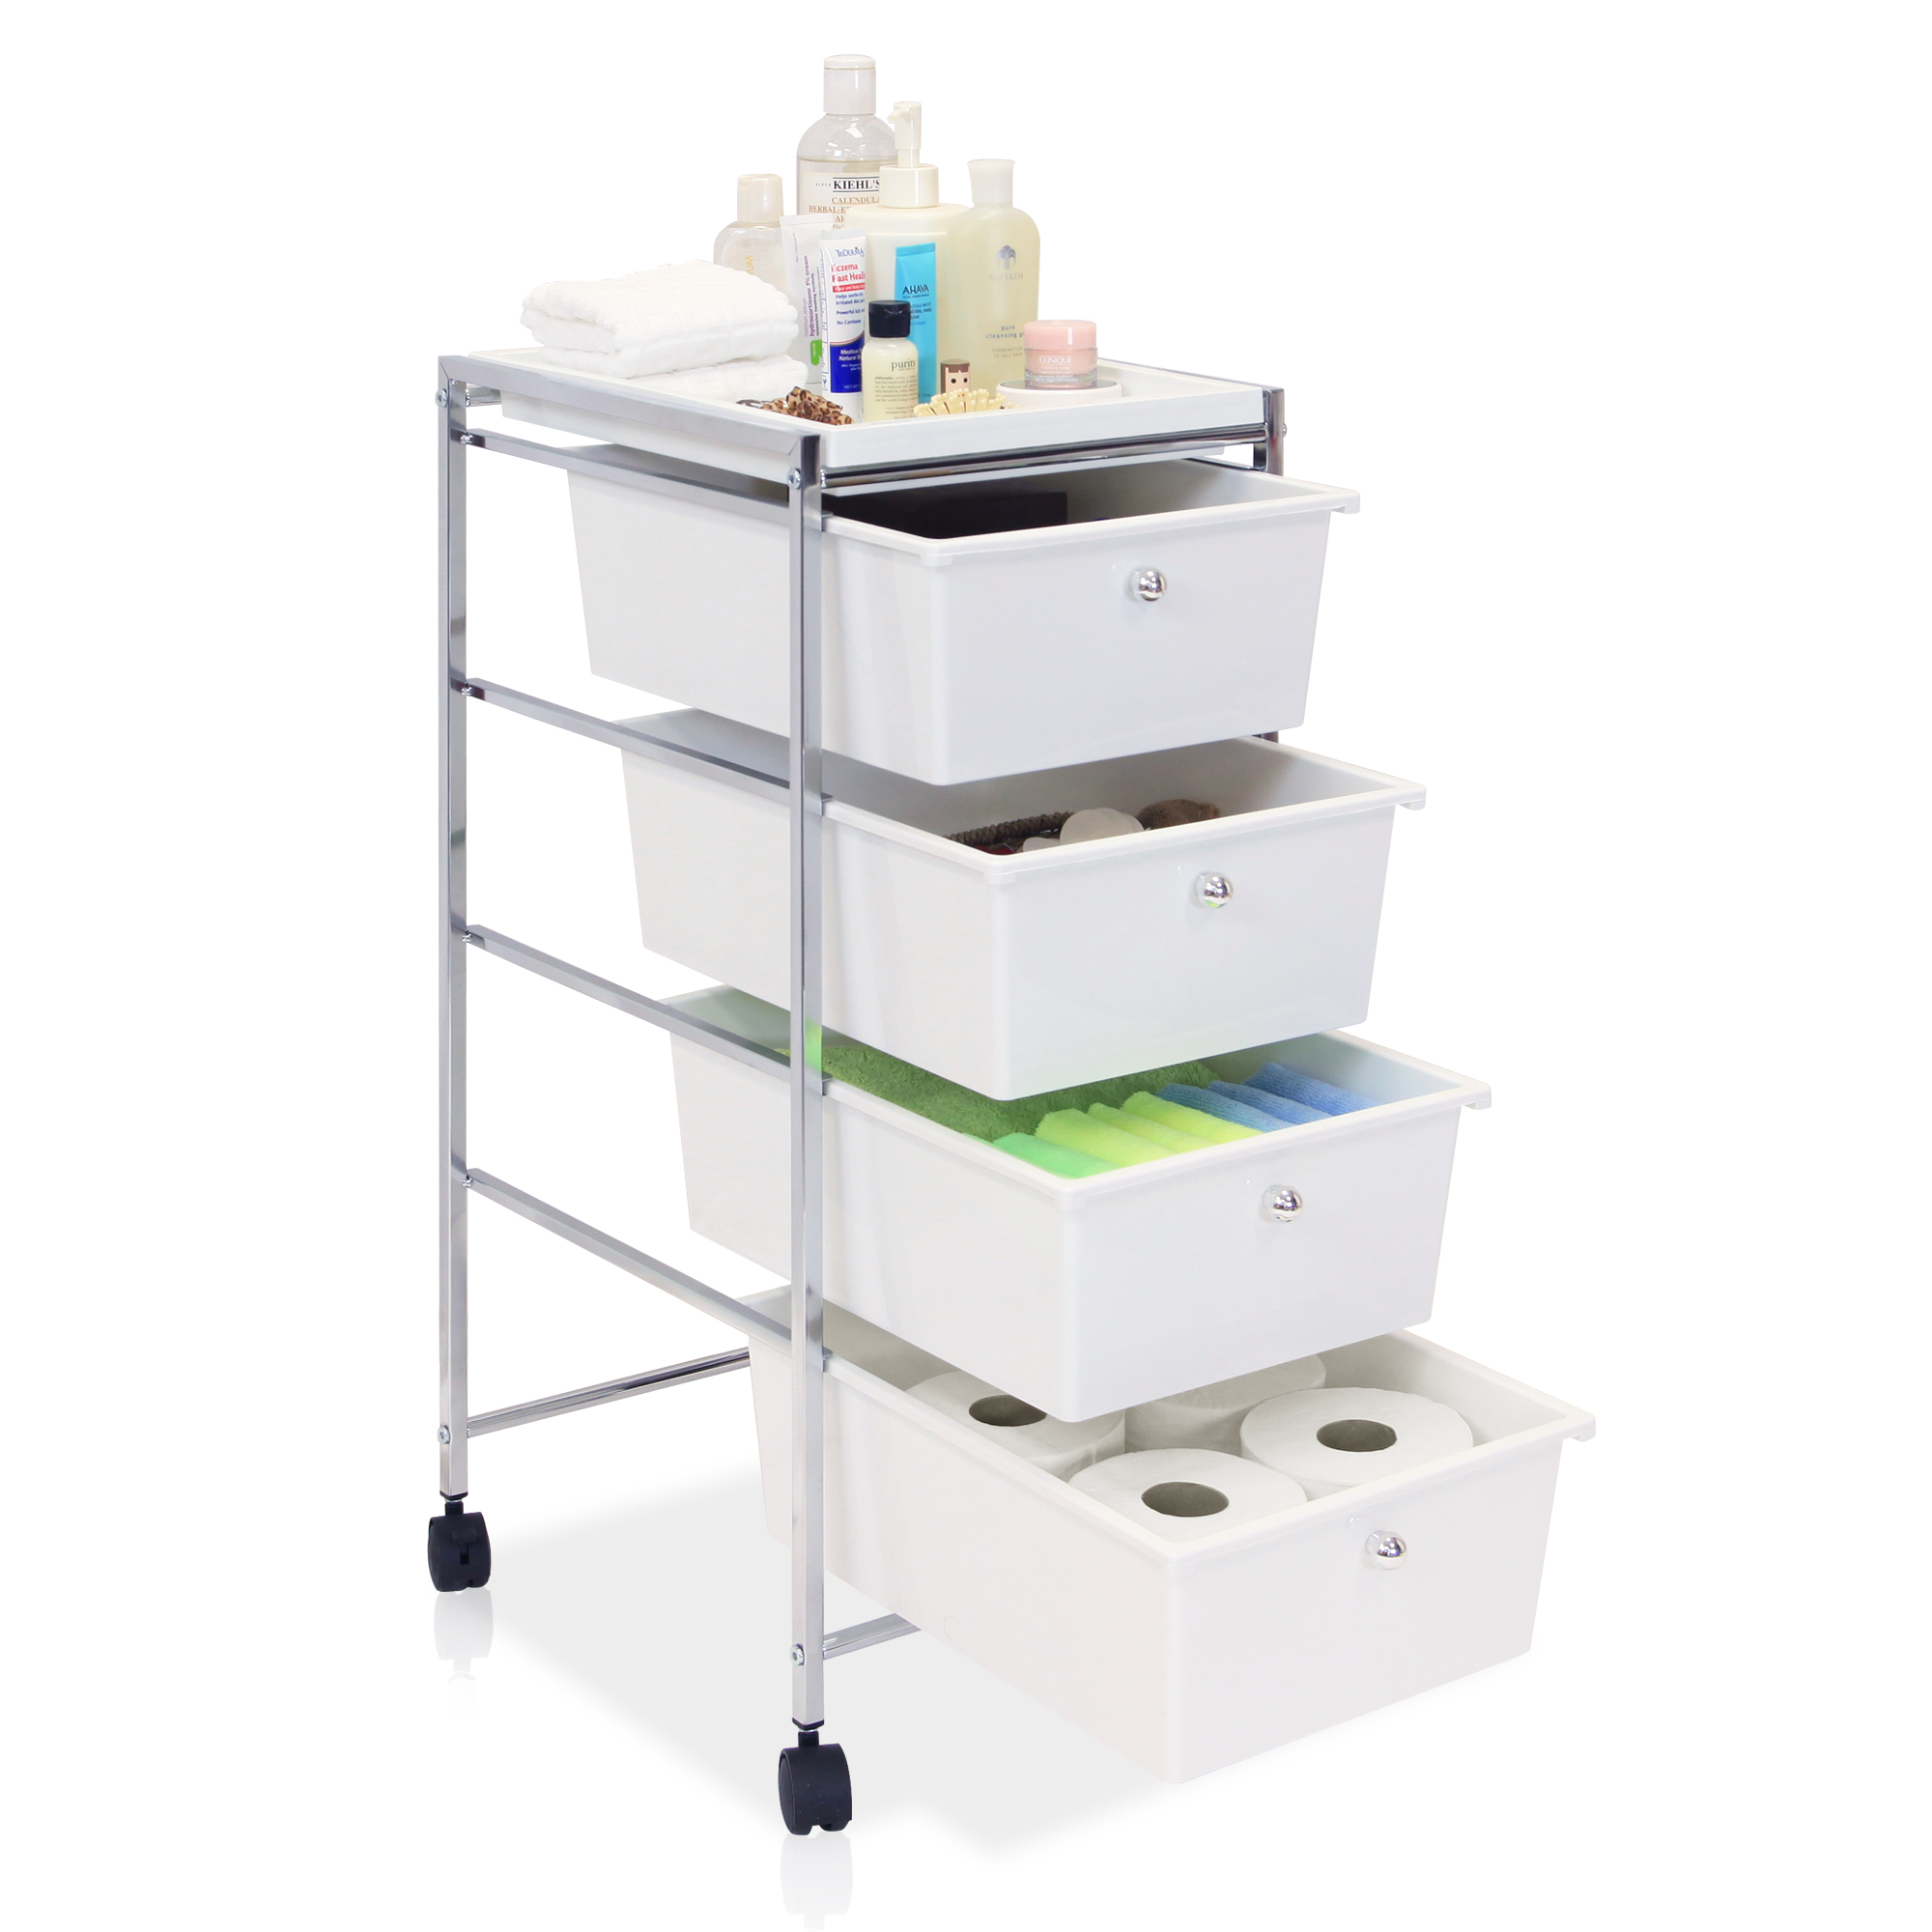 com drawer chrome storage plastic frame rainbow utility and cart multi finnhomy drawers bright purpose amazon portable metal organizer rolling dp double mobile